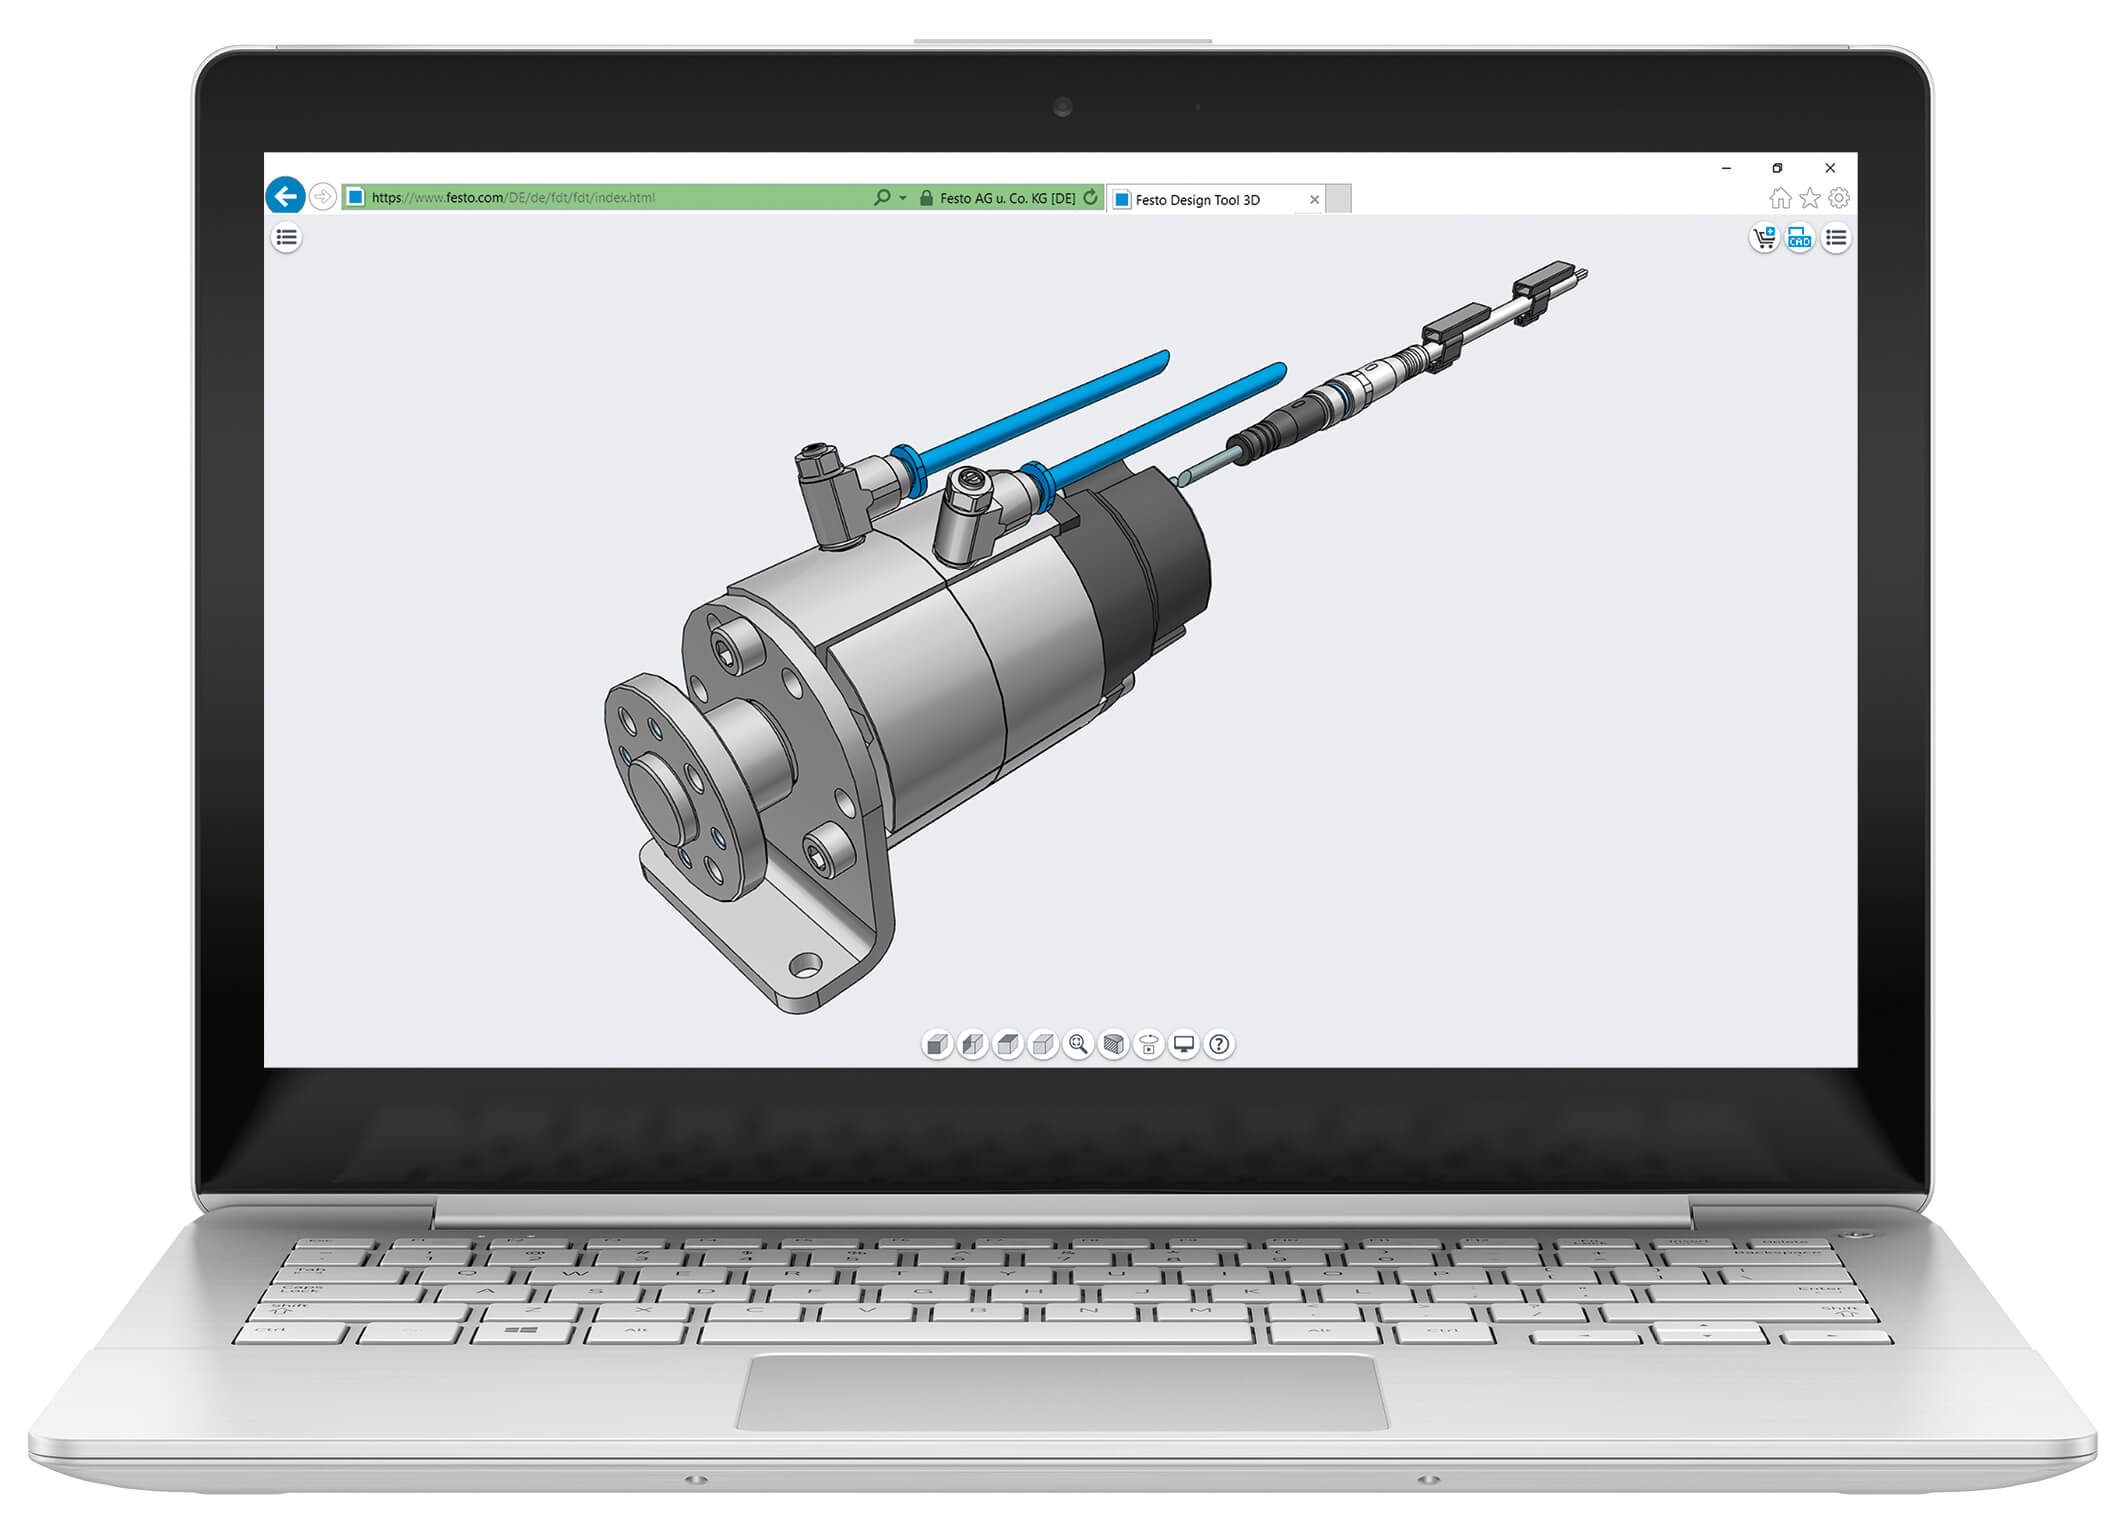 Festo Design Tool 3d Now As A Fast Online Tool Industry